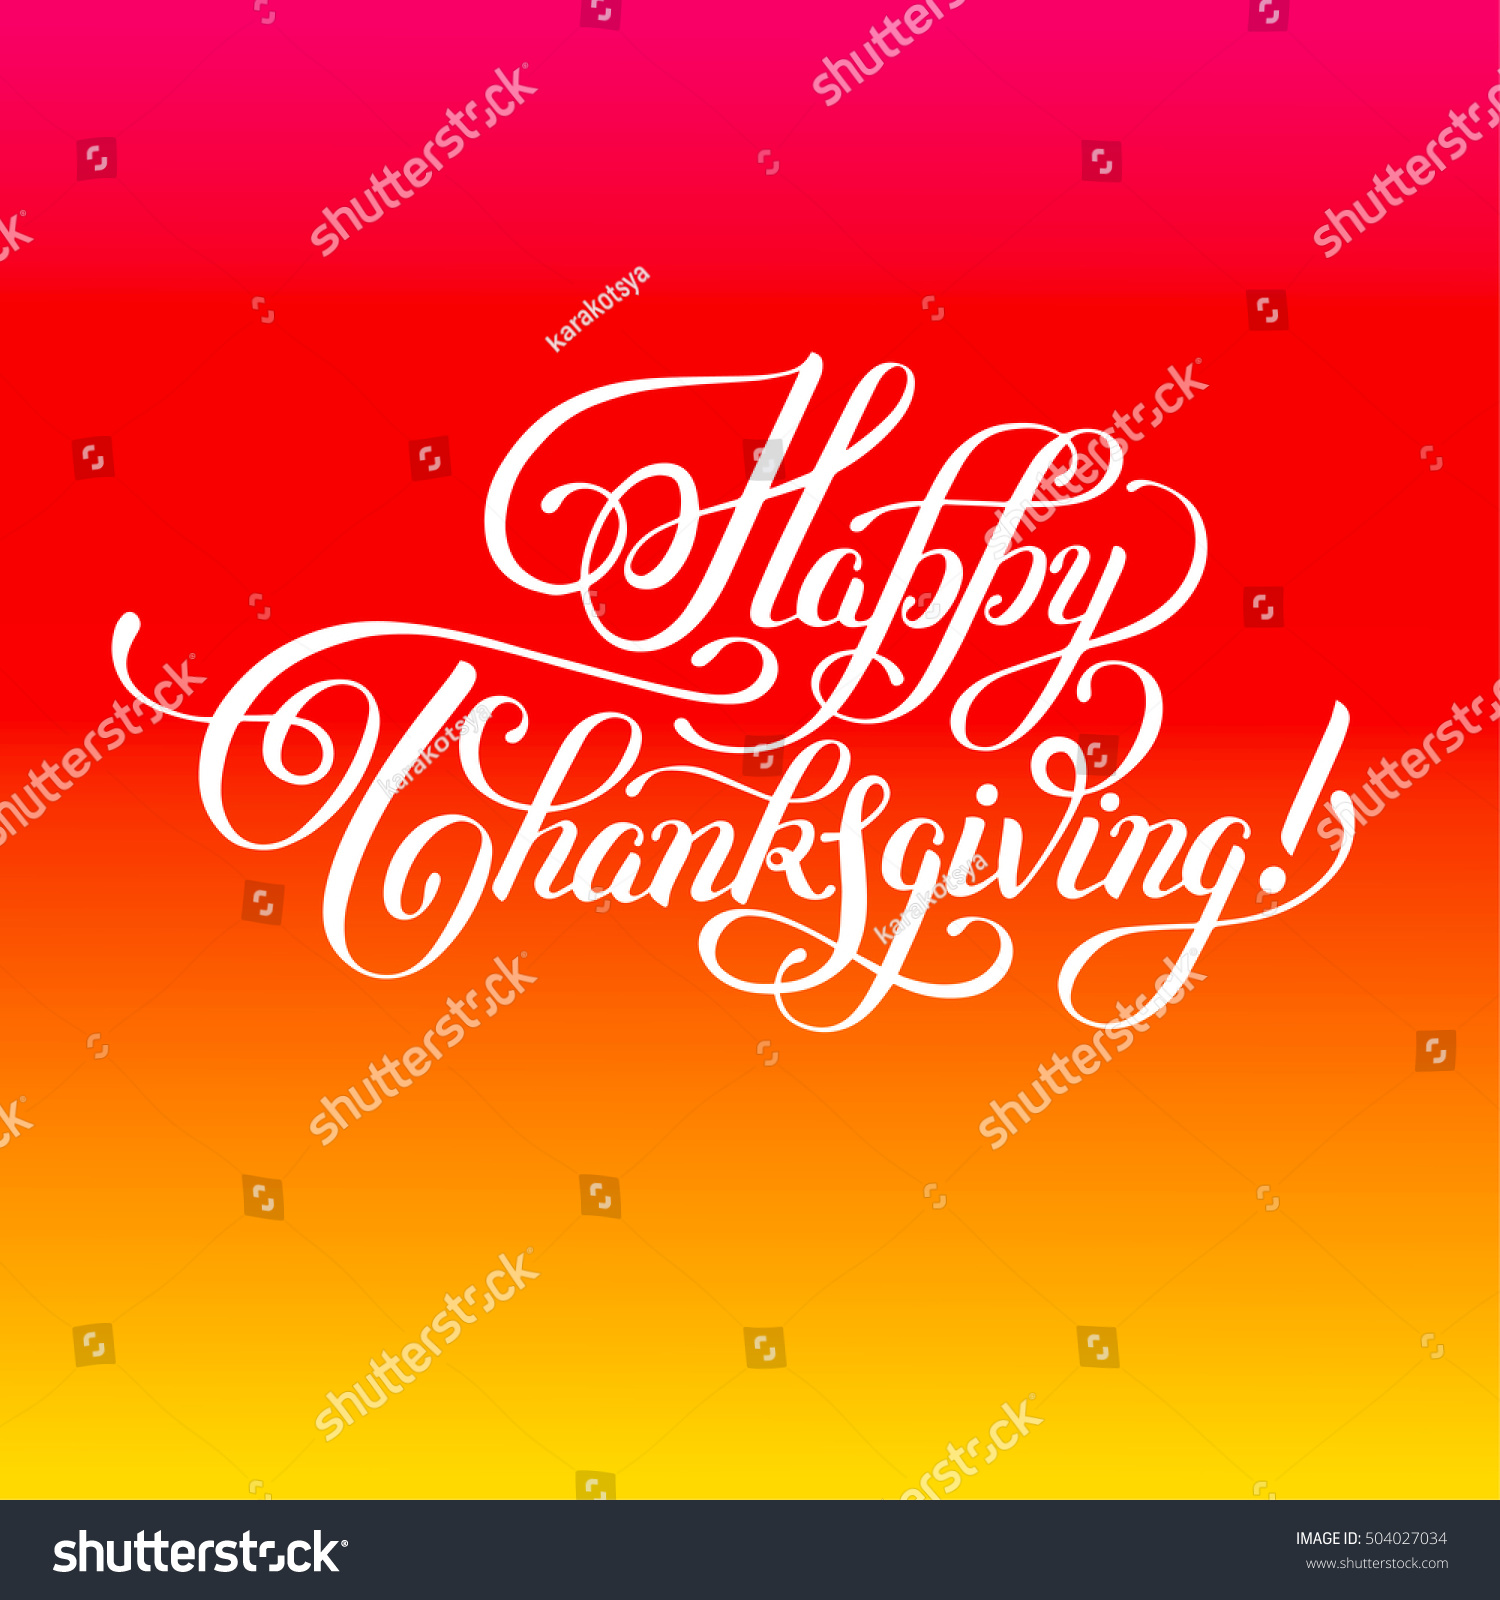 Happy Thanksgiving Handwritten Lettering Inscription For Greeting